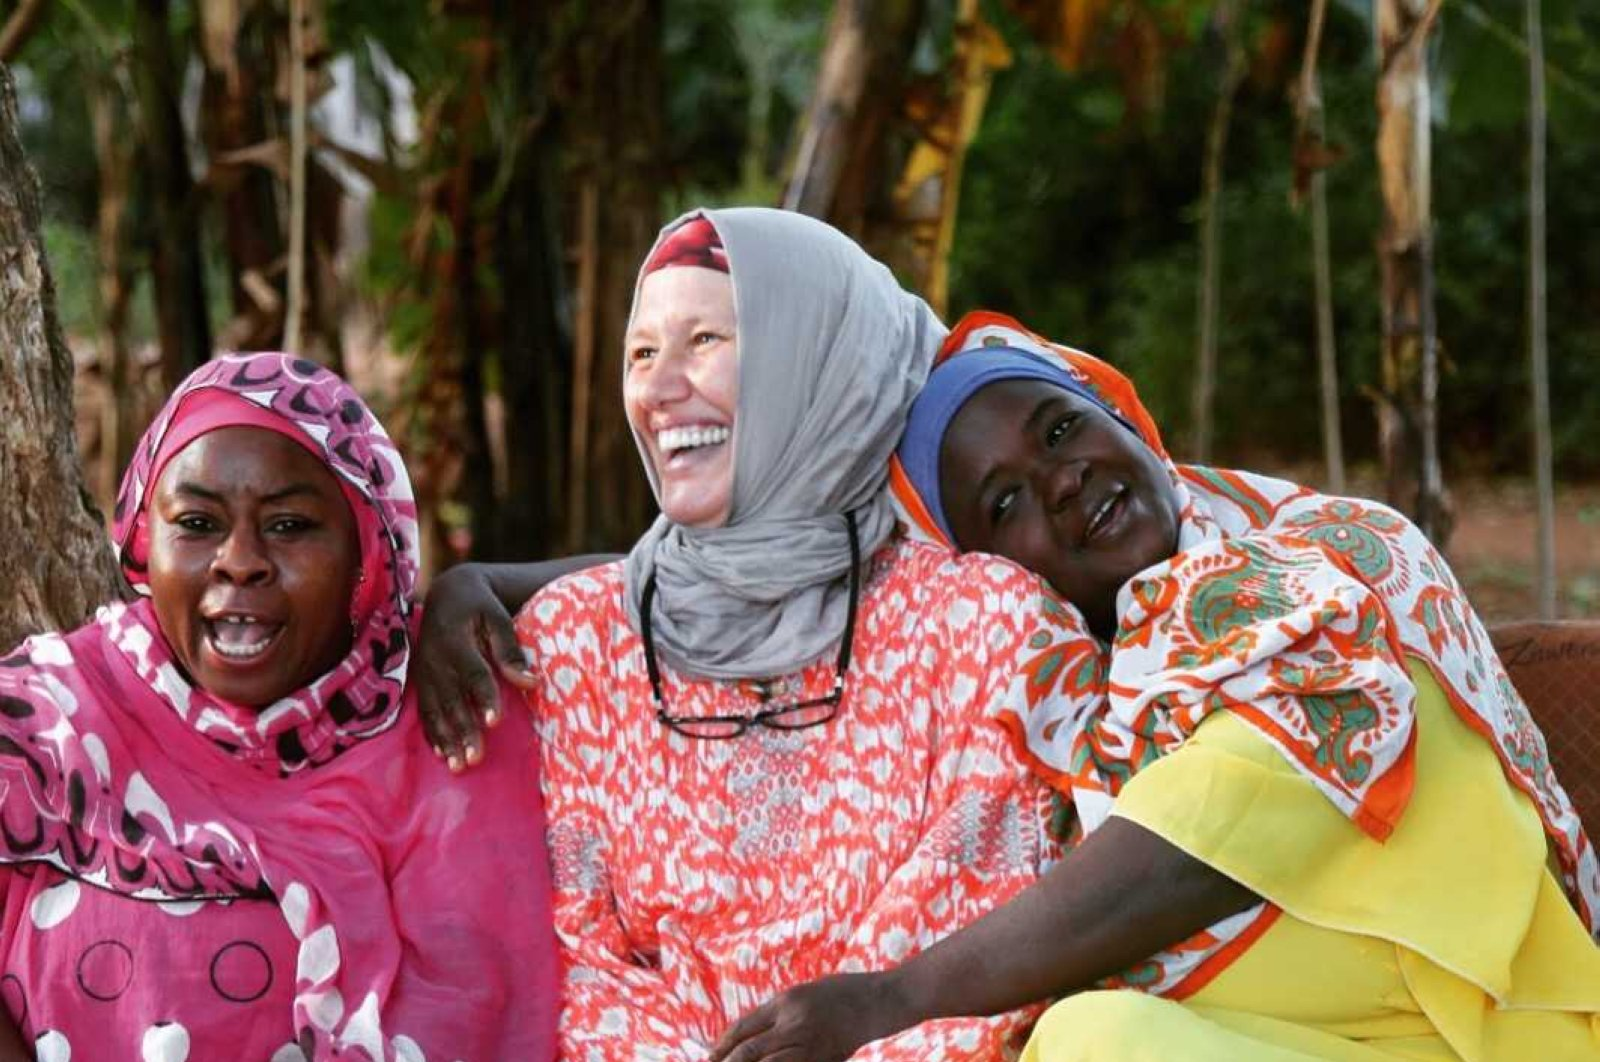 Kevser Aydoğdu (center) said she will always cherish the time she spent in Zanzibar where she fell in love with its culture and people. (Photo courtesy of the Assalam Community Foundation)